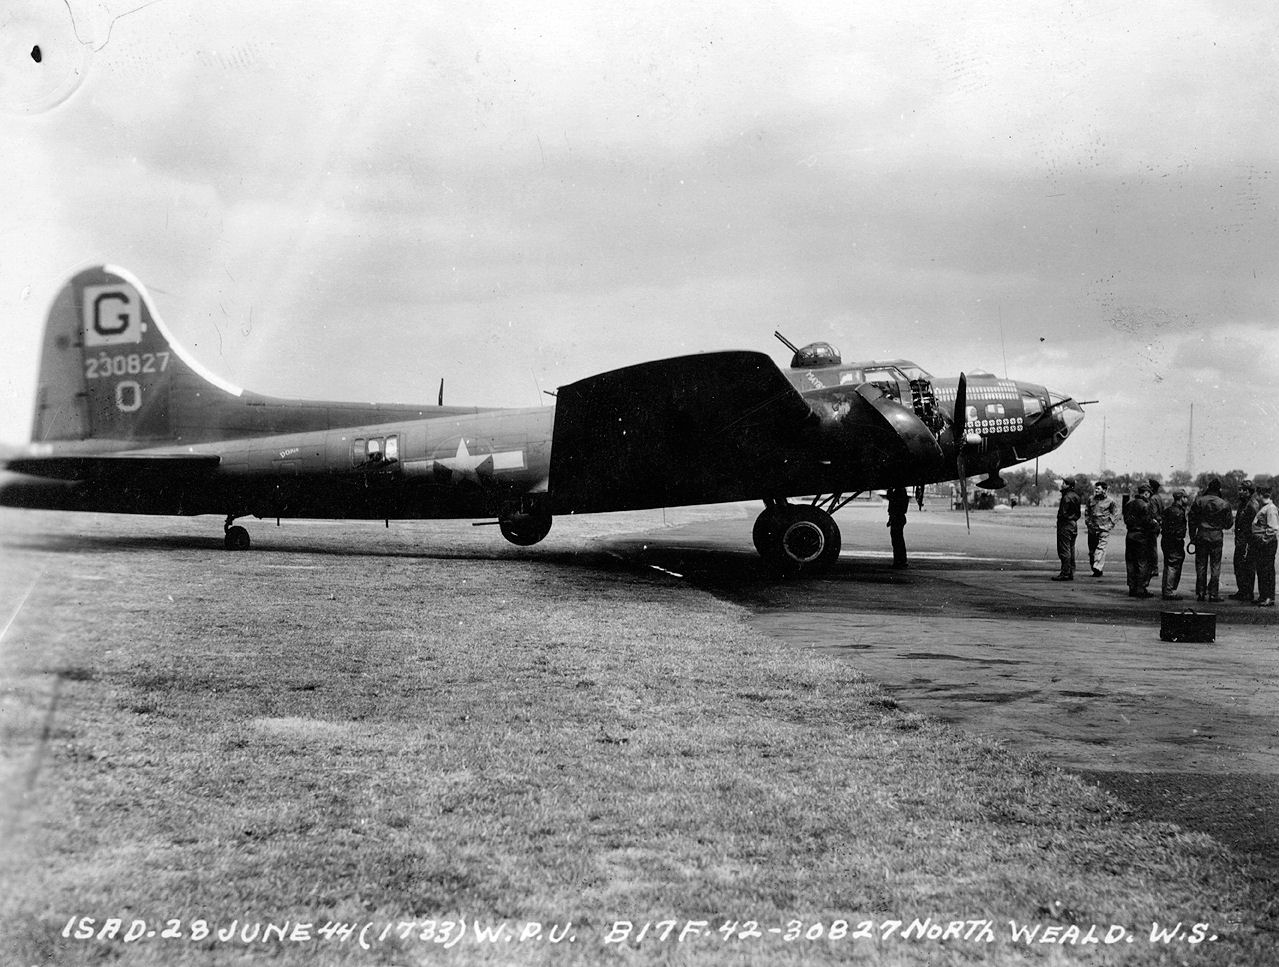 File:385th_Bombardment_Group_B 17F_Flying_Fortress_42 30827 on Number Formation